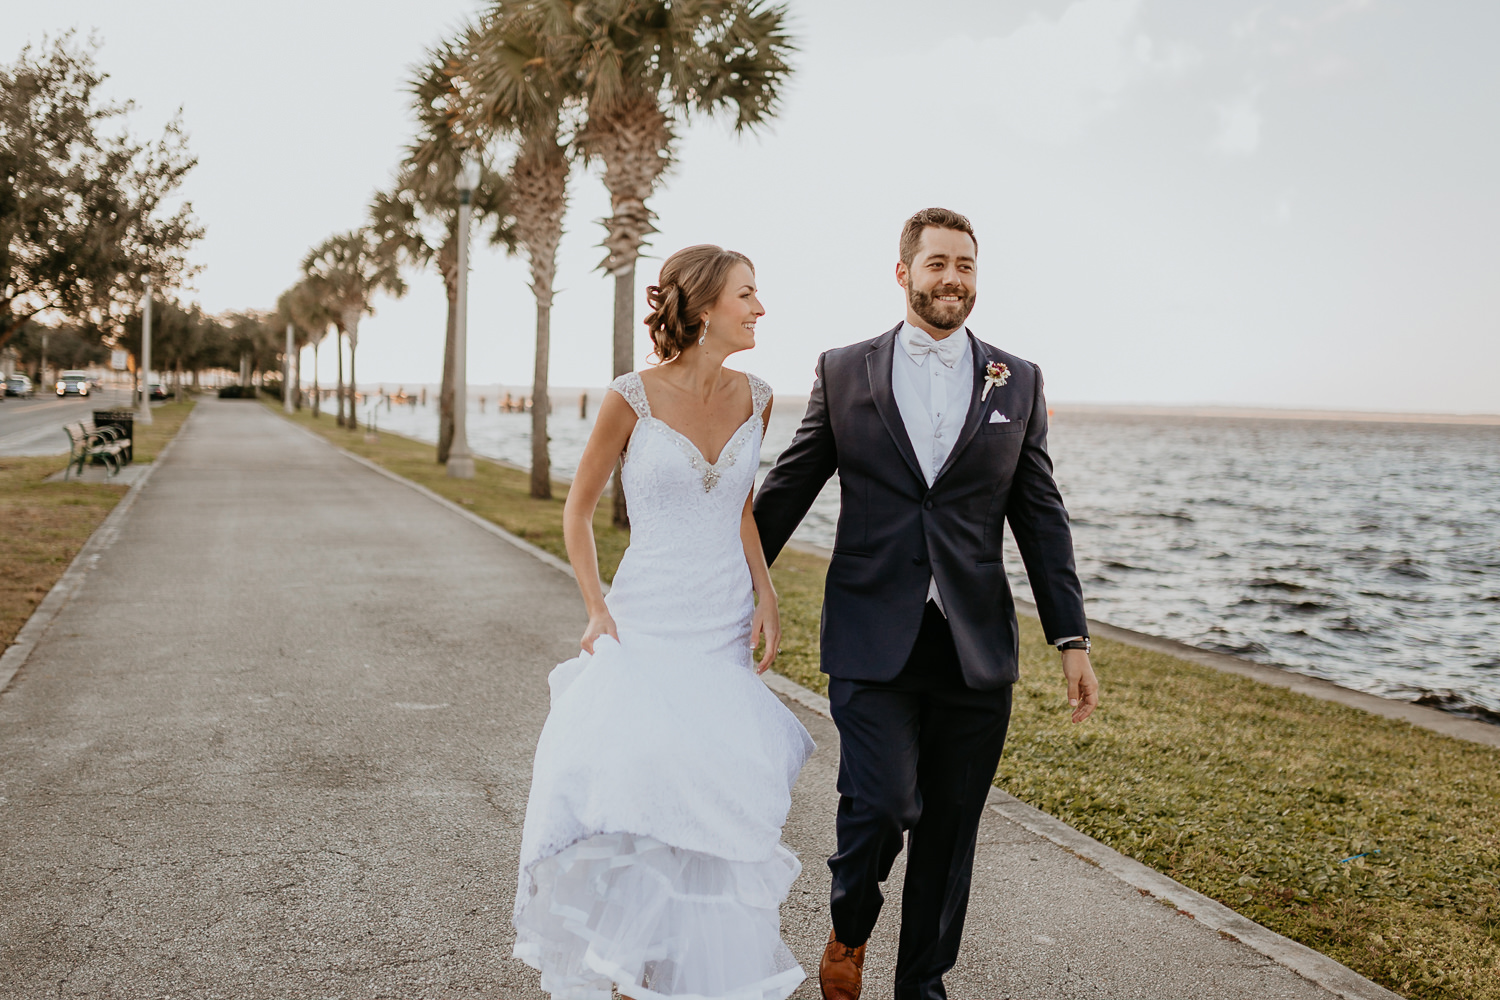 newlyweds walking together down street next to lake lined with palm trees